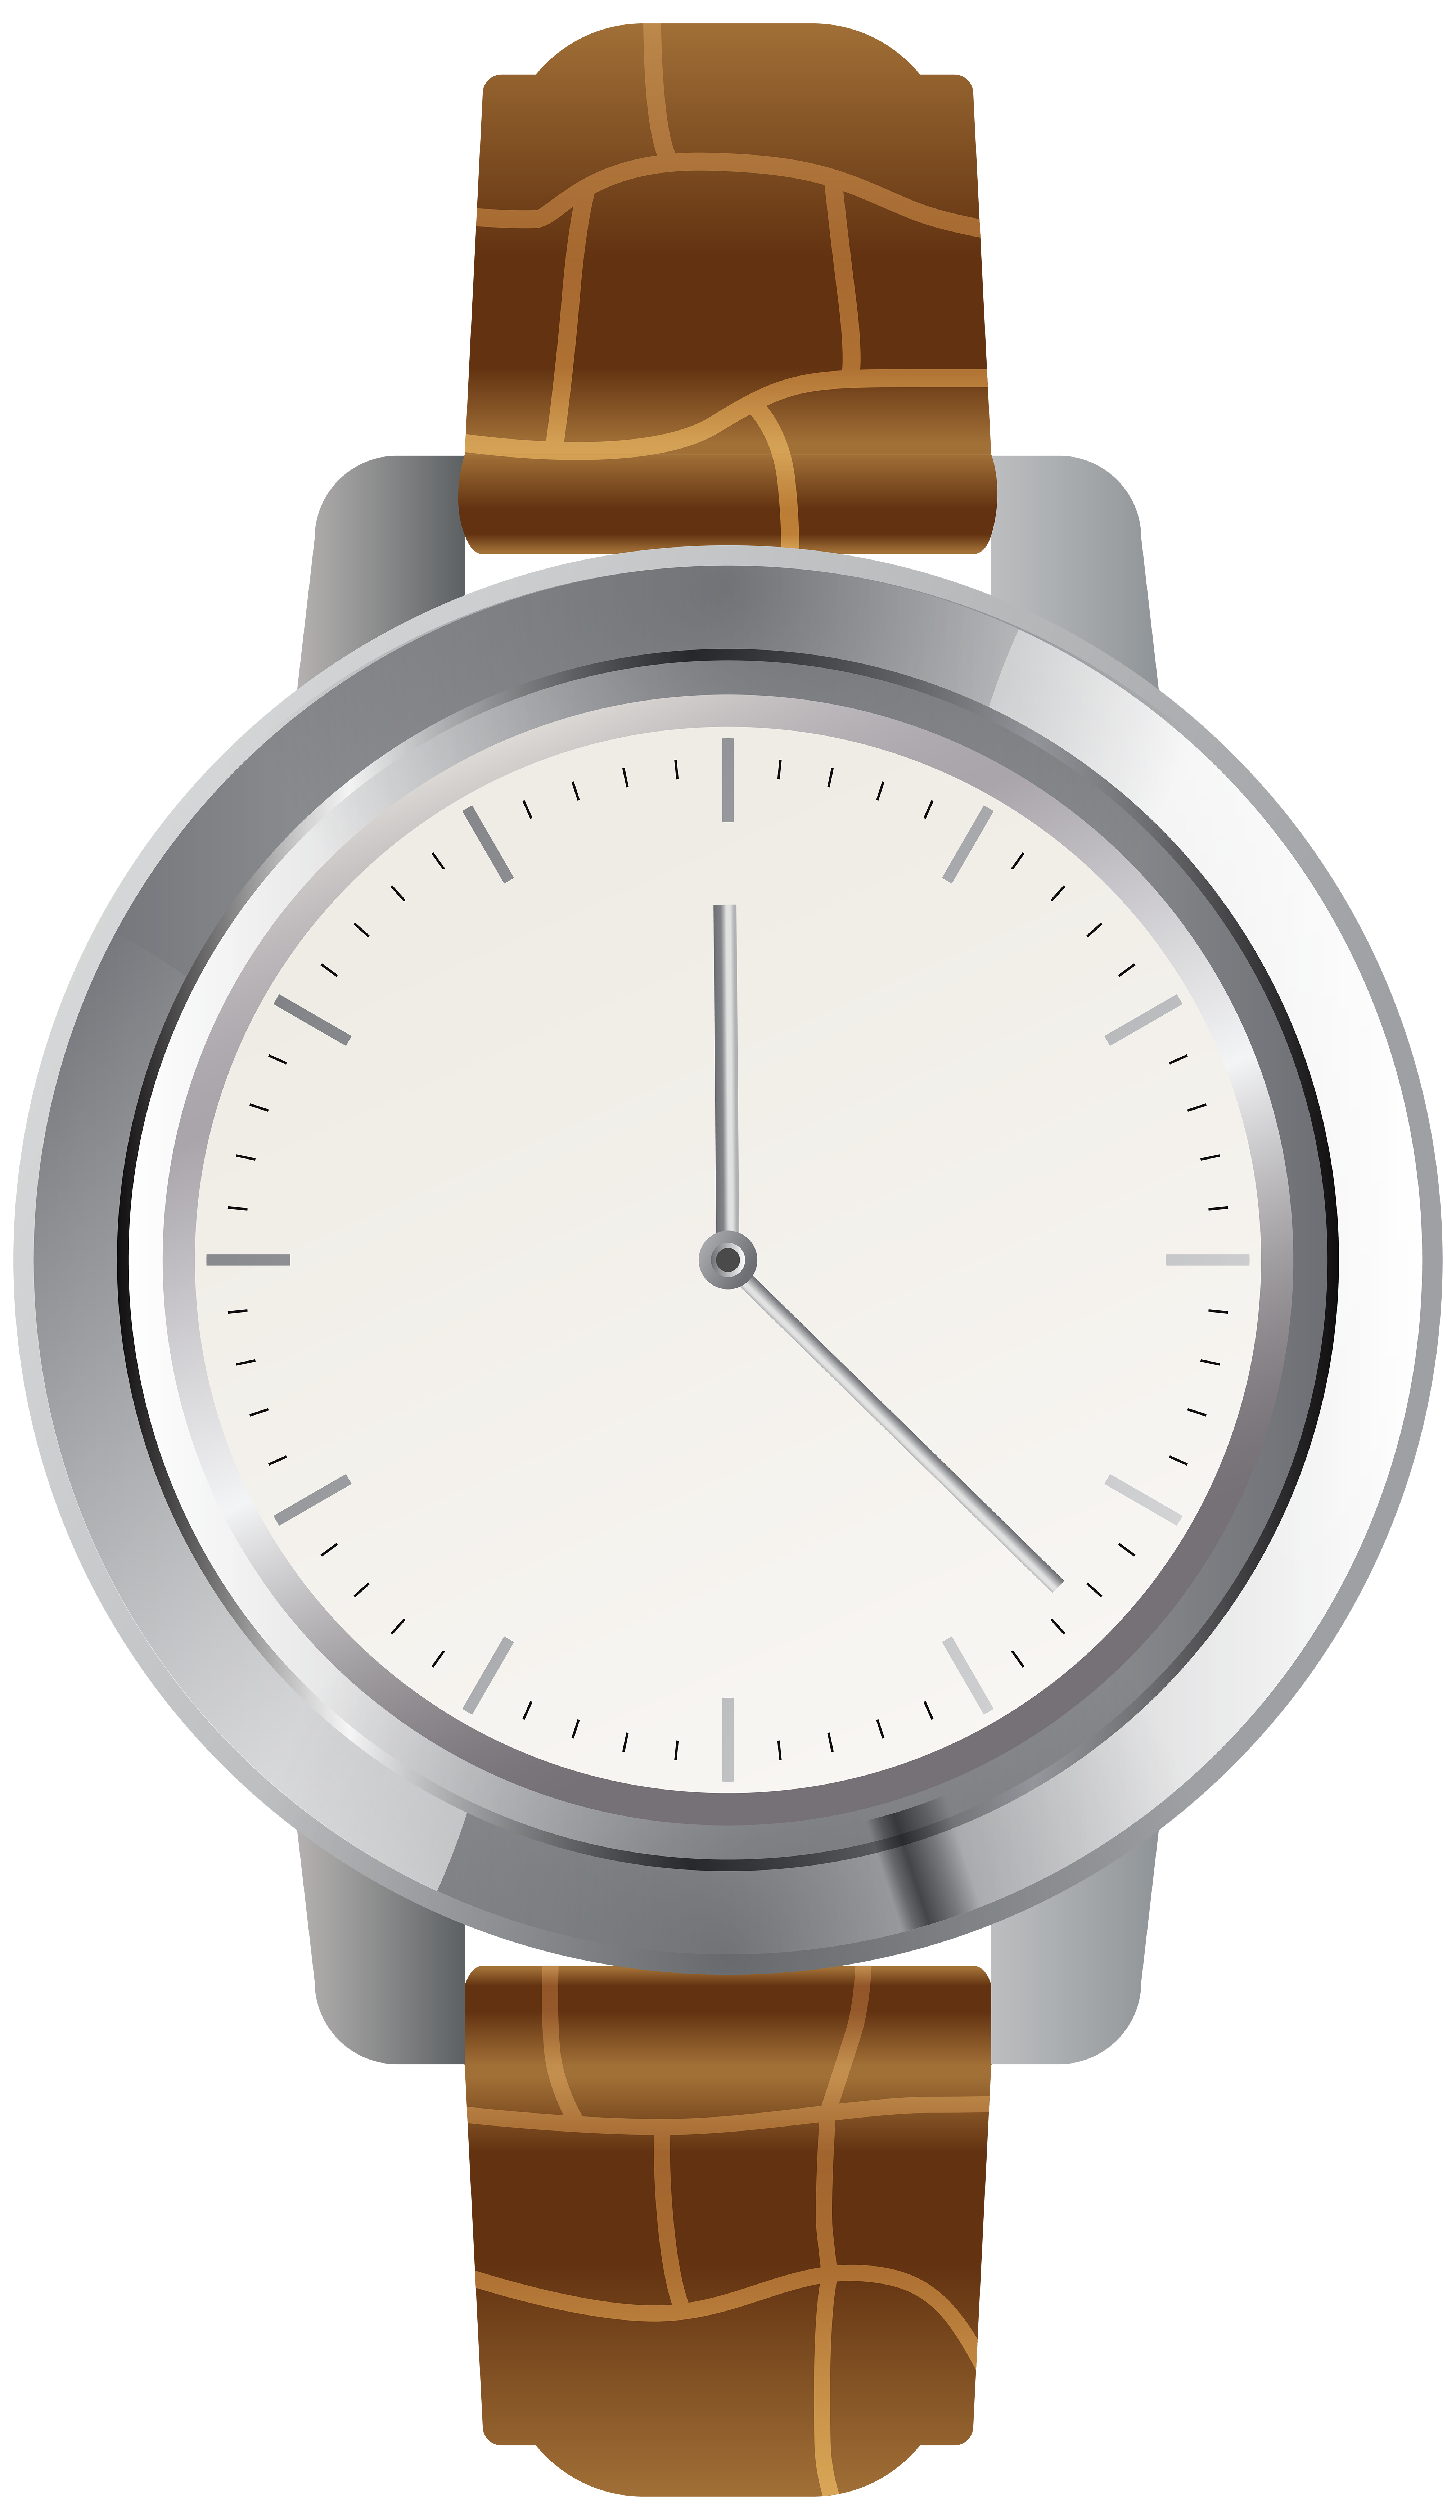 Watch picture clipart clip black and white download Watch PNG Images Digital Watch, Wall Clock, Smart Watches ... clip black and white download